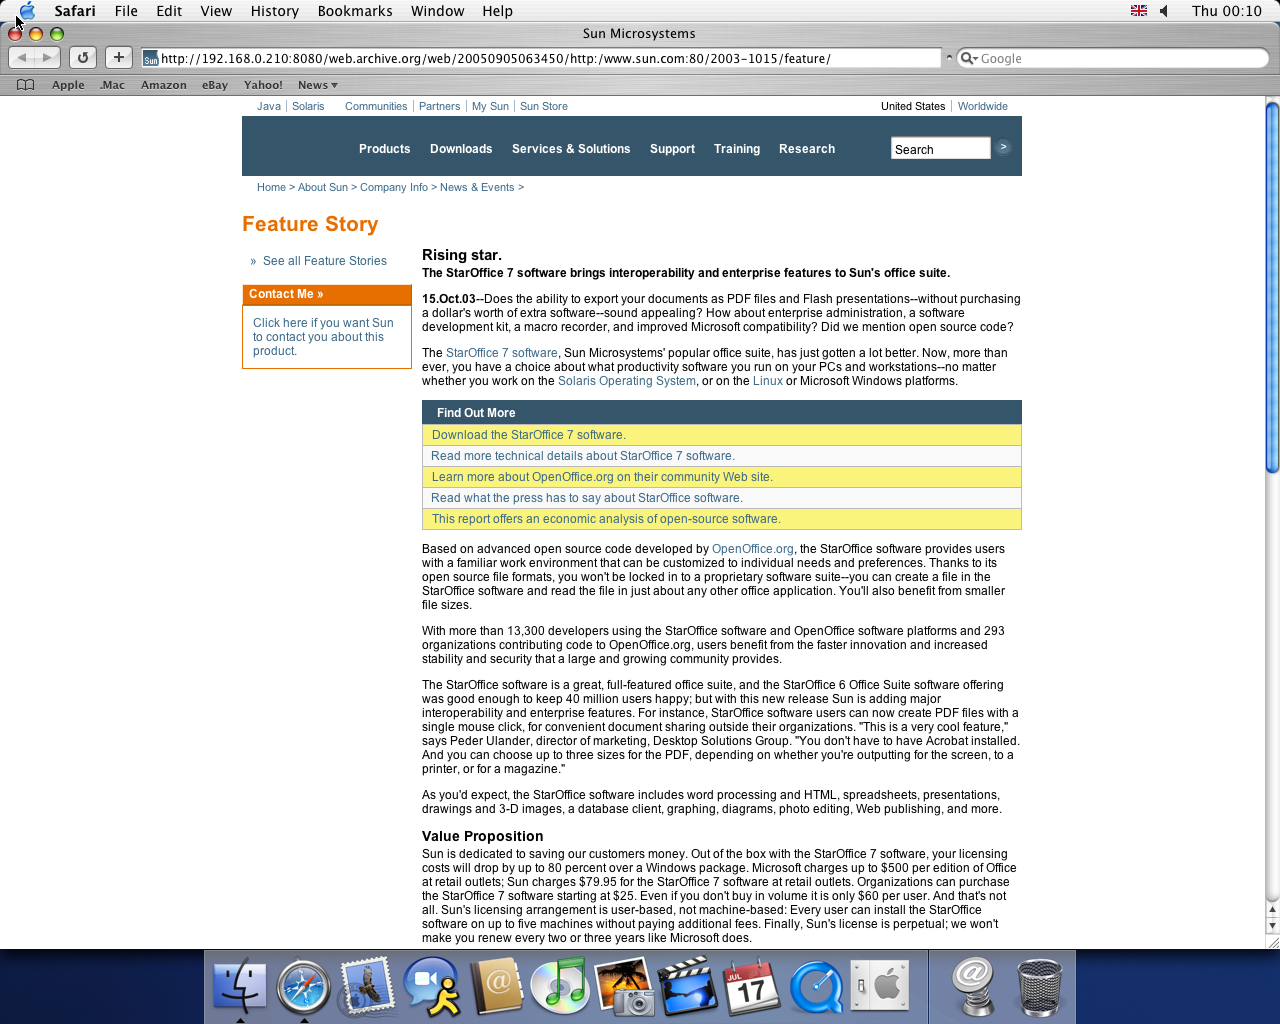 OS X 10.3 PPC with Safari 1.1 displaying a page from Sun Microsystems archived at September 05, 2005 at 06:34:50